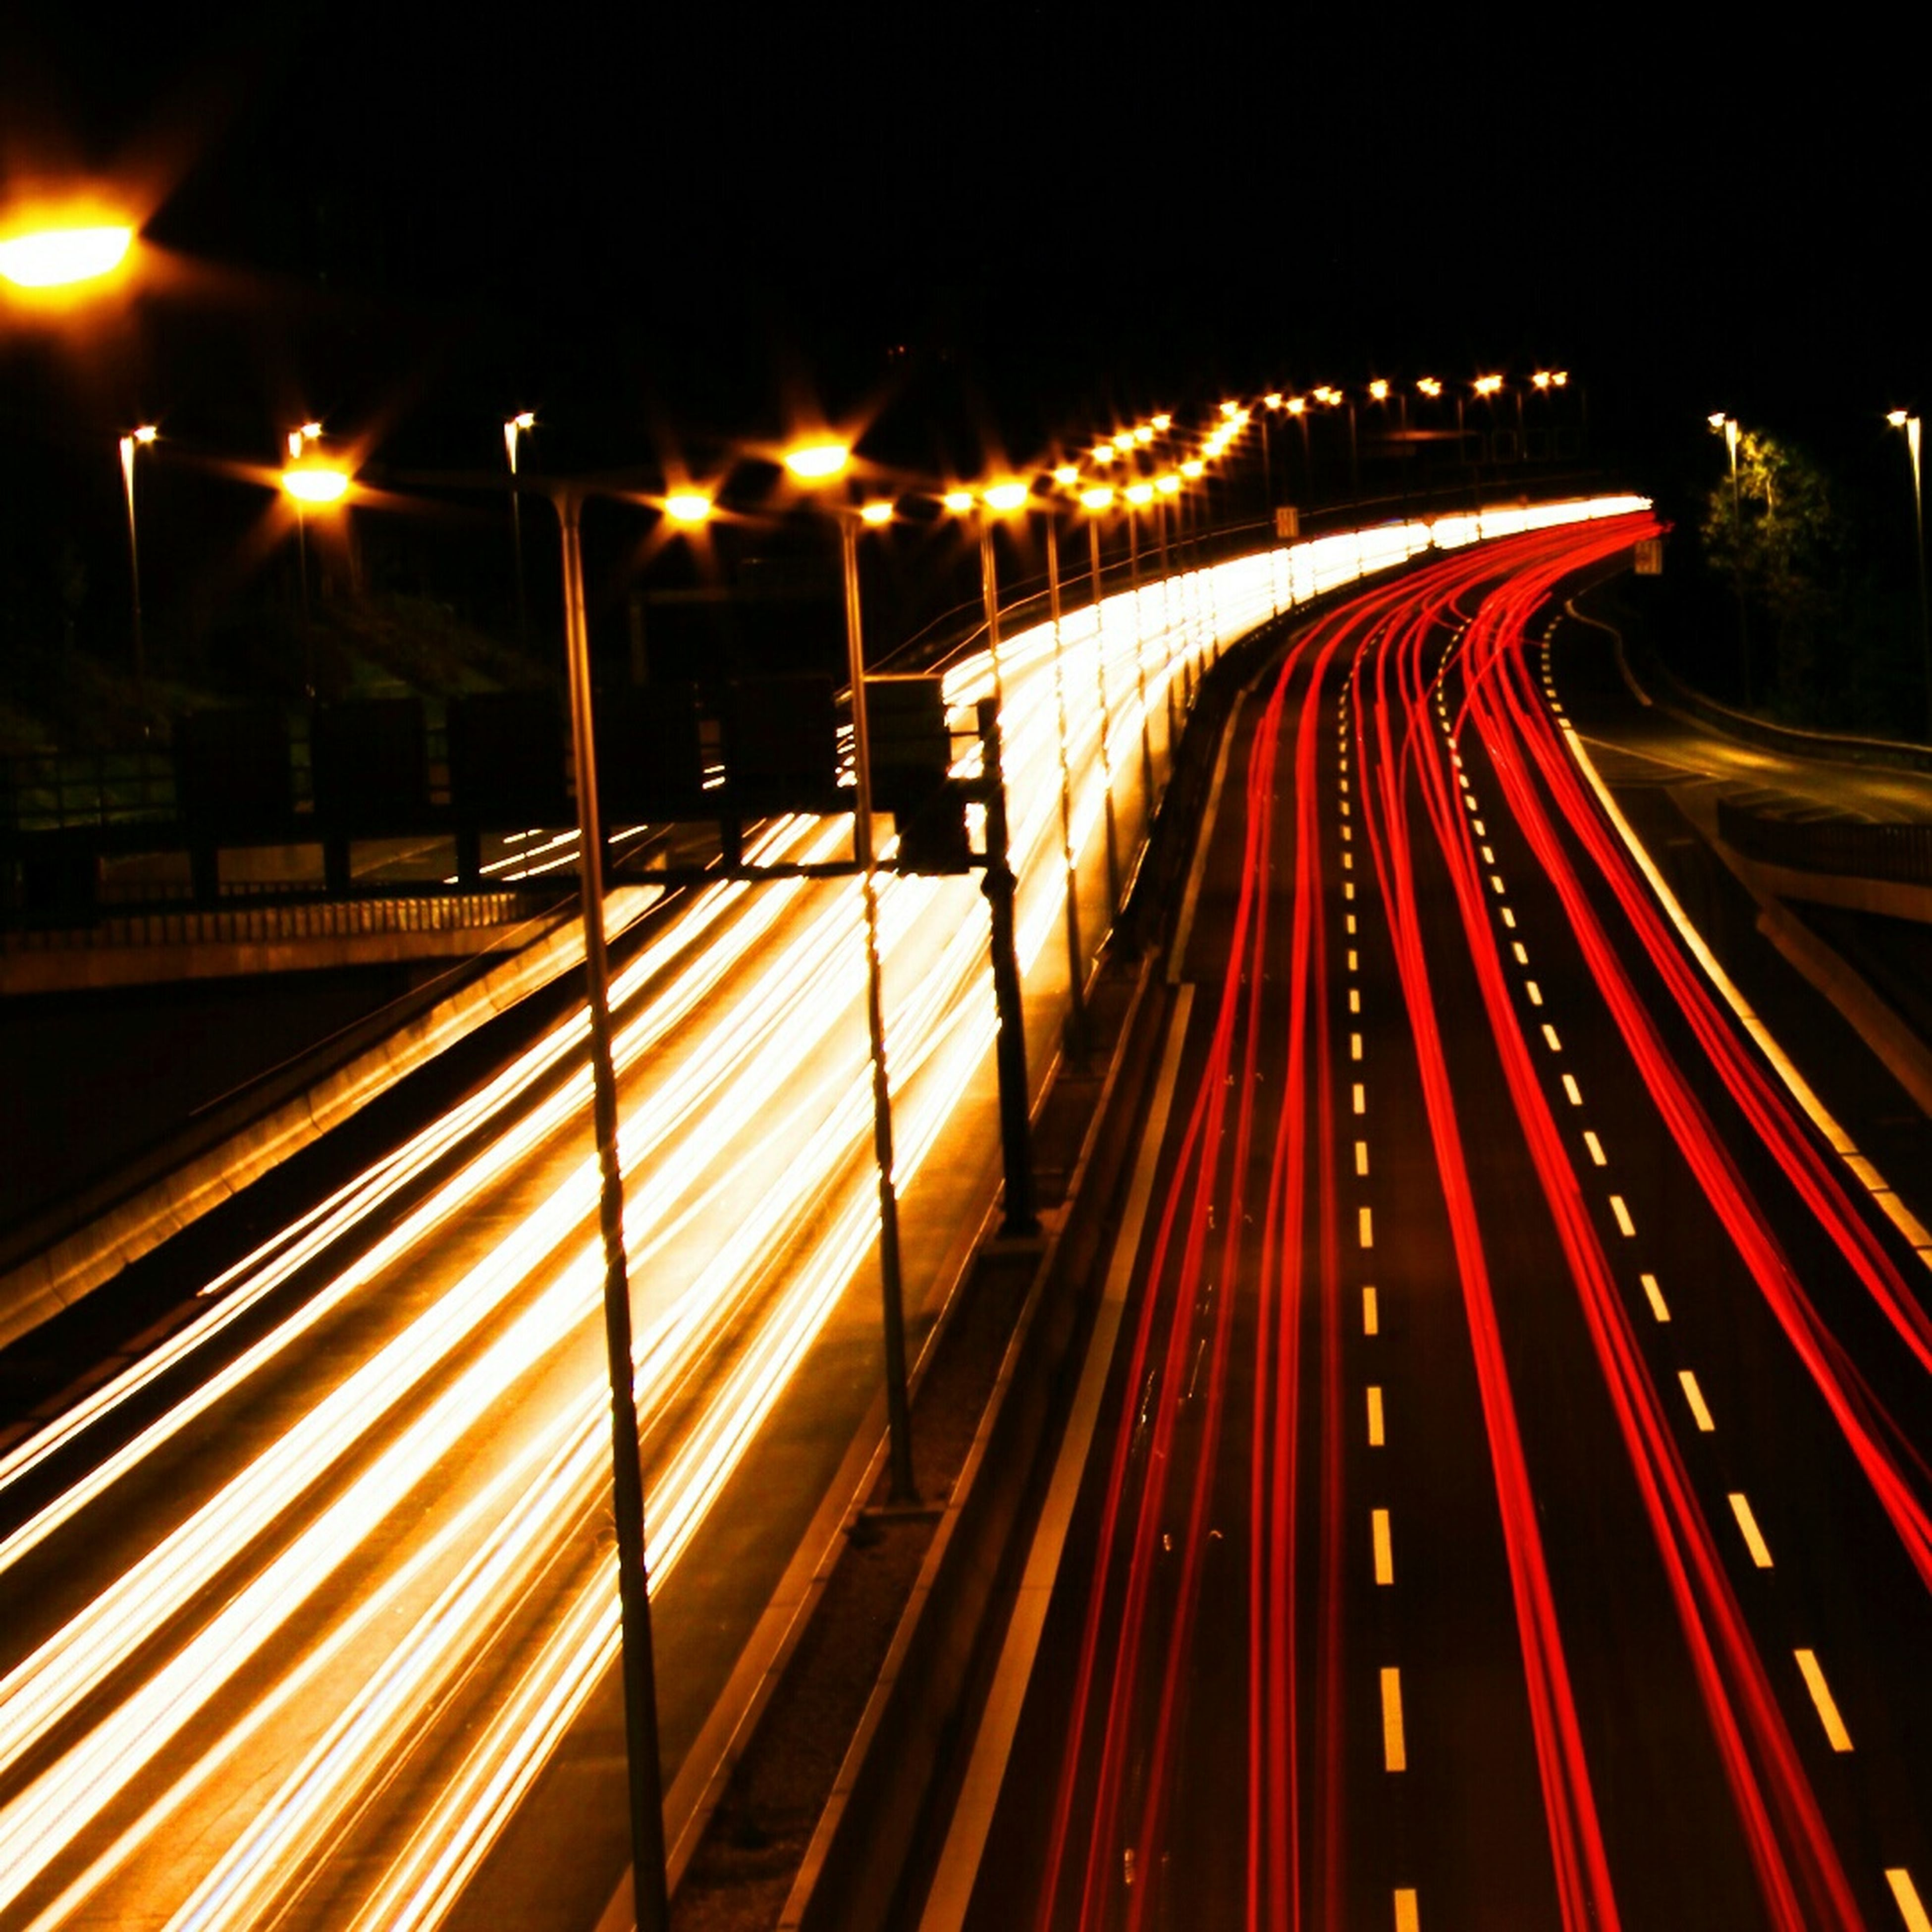 illuminated, night, long exposure, light trail, speed, transportation, motion, street light, blurred motion, road, city, traffic, the way forward, lighting equipment, street, high angle view, city life, road marking, highway, on the move